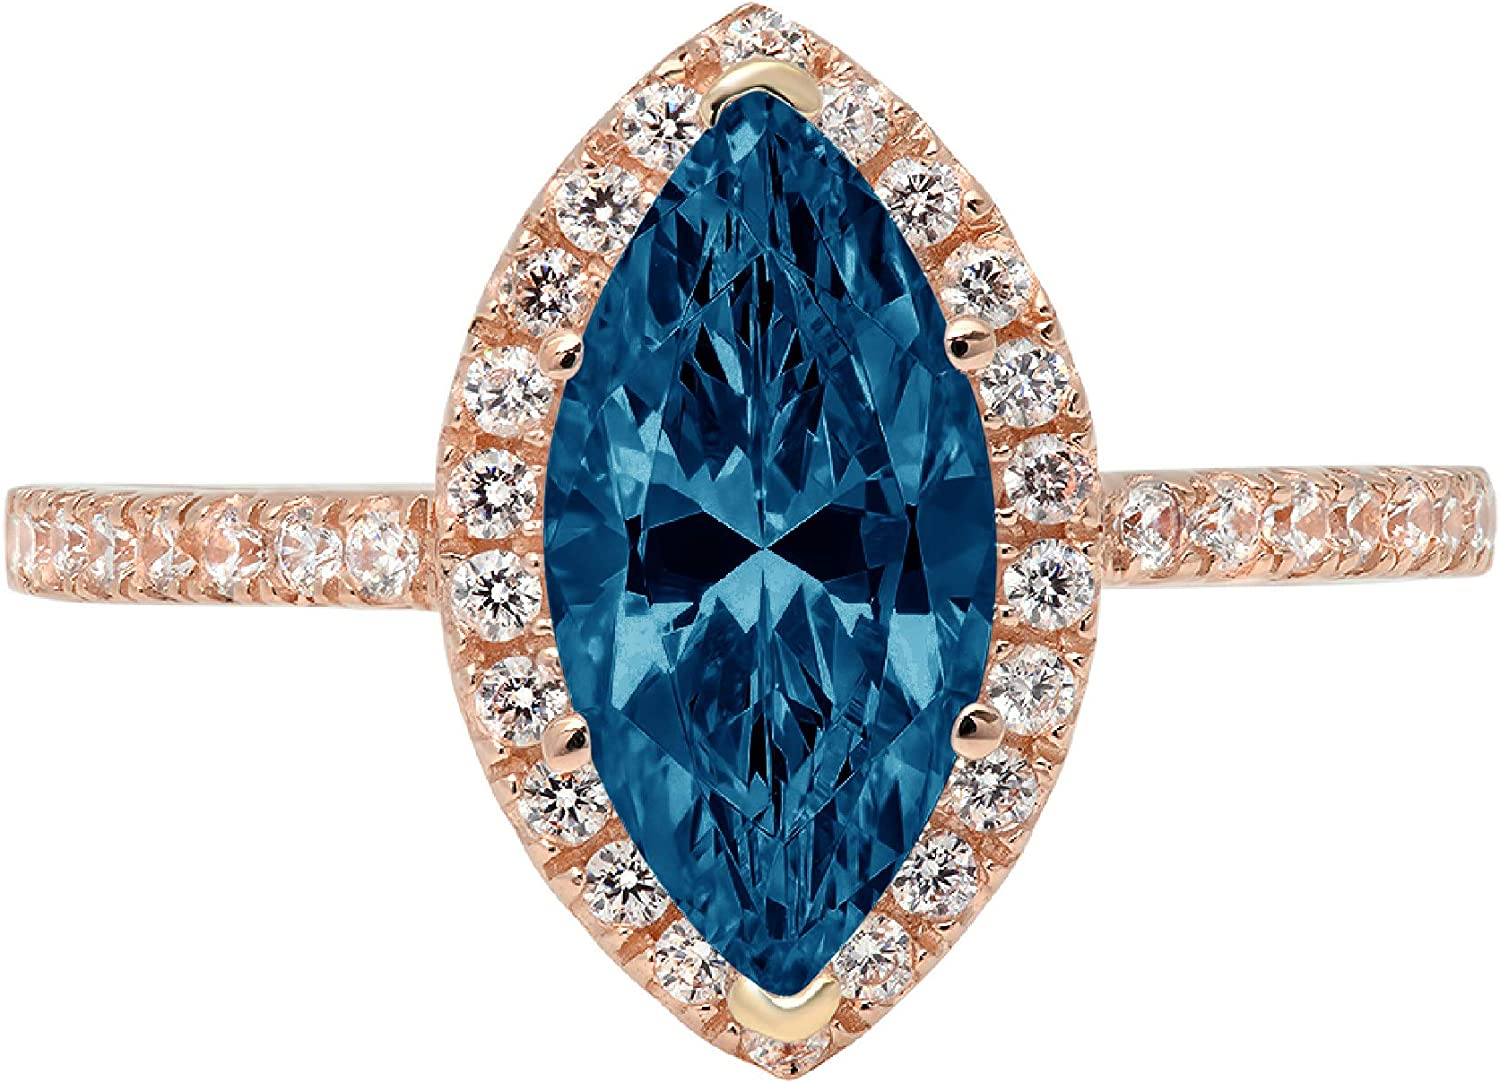 2.35ct Brilliant Marquise Cut Solitaire with Accent Halo Natural London Blue Topaz Gem Stone VVS1 Designer Modern Statement Ring Solid 14k Rose Gold Clara Pucci